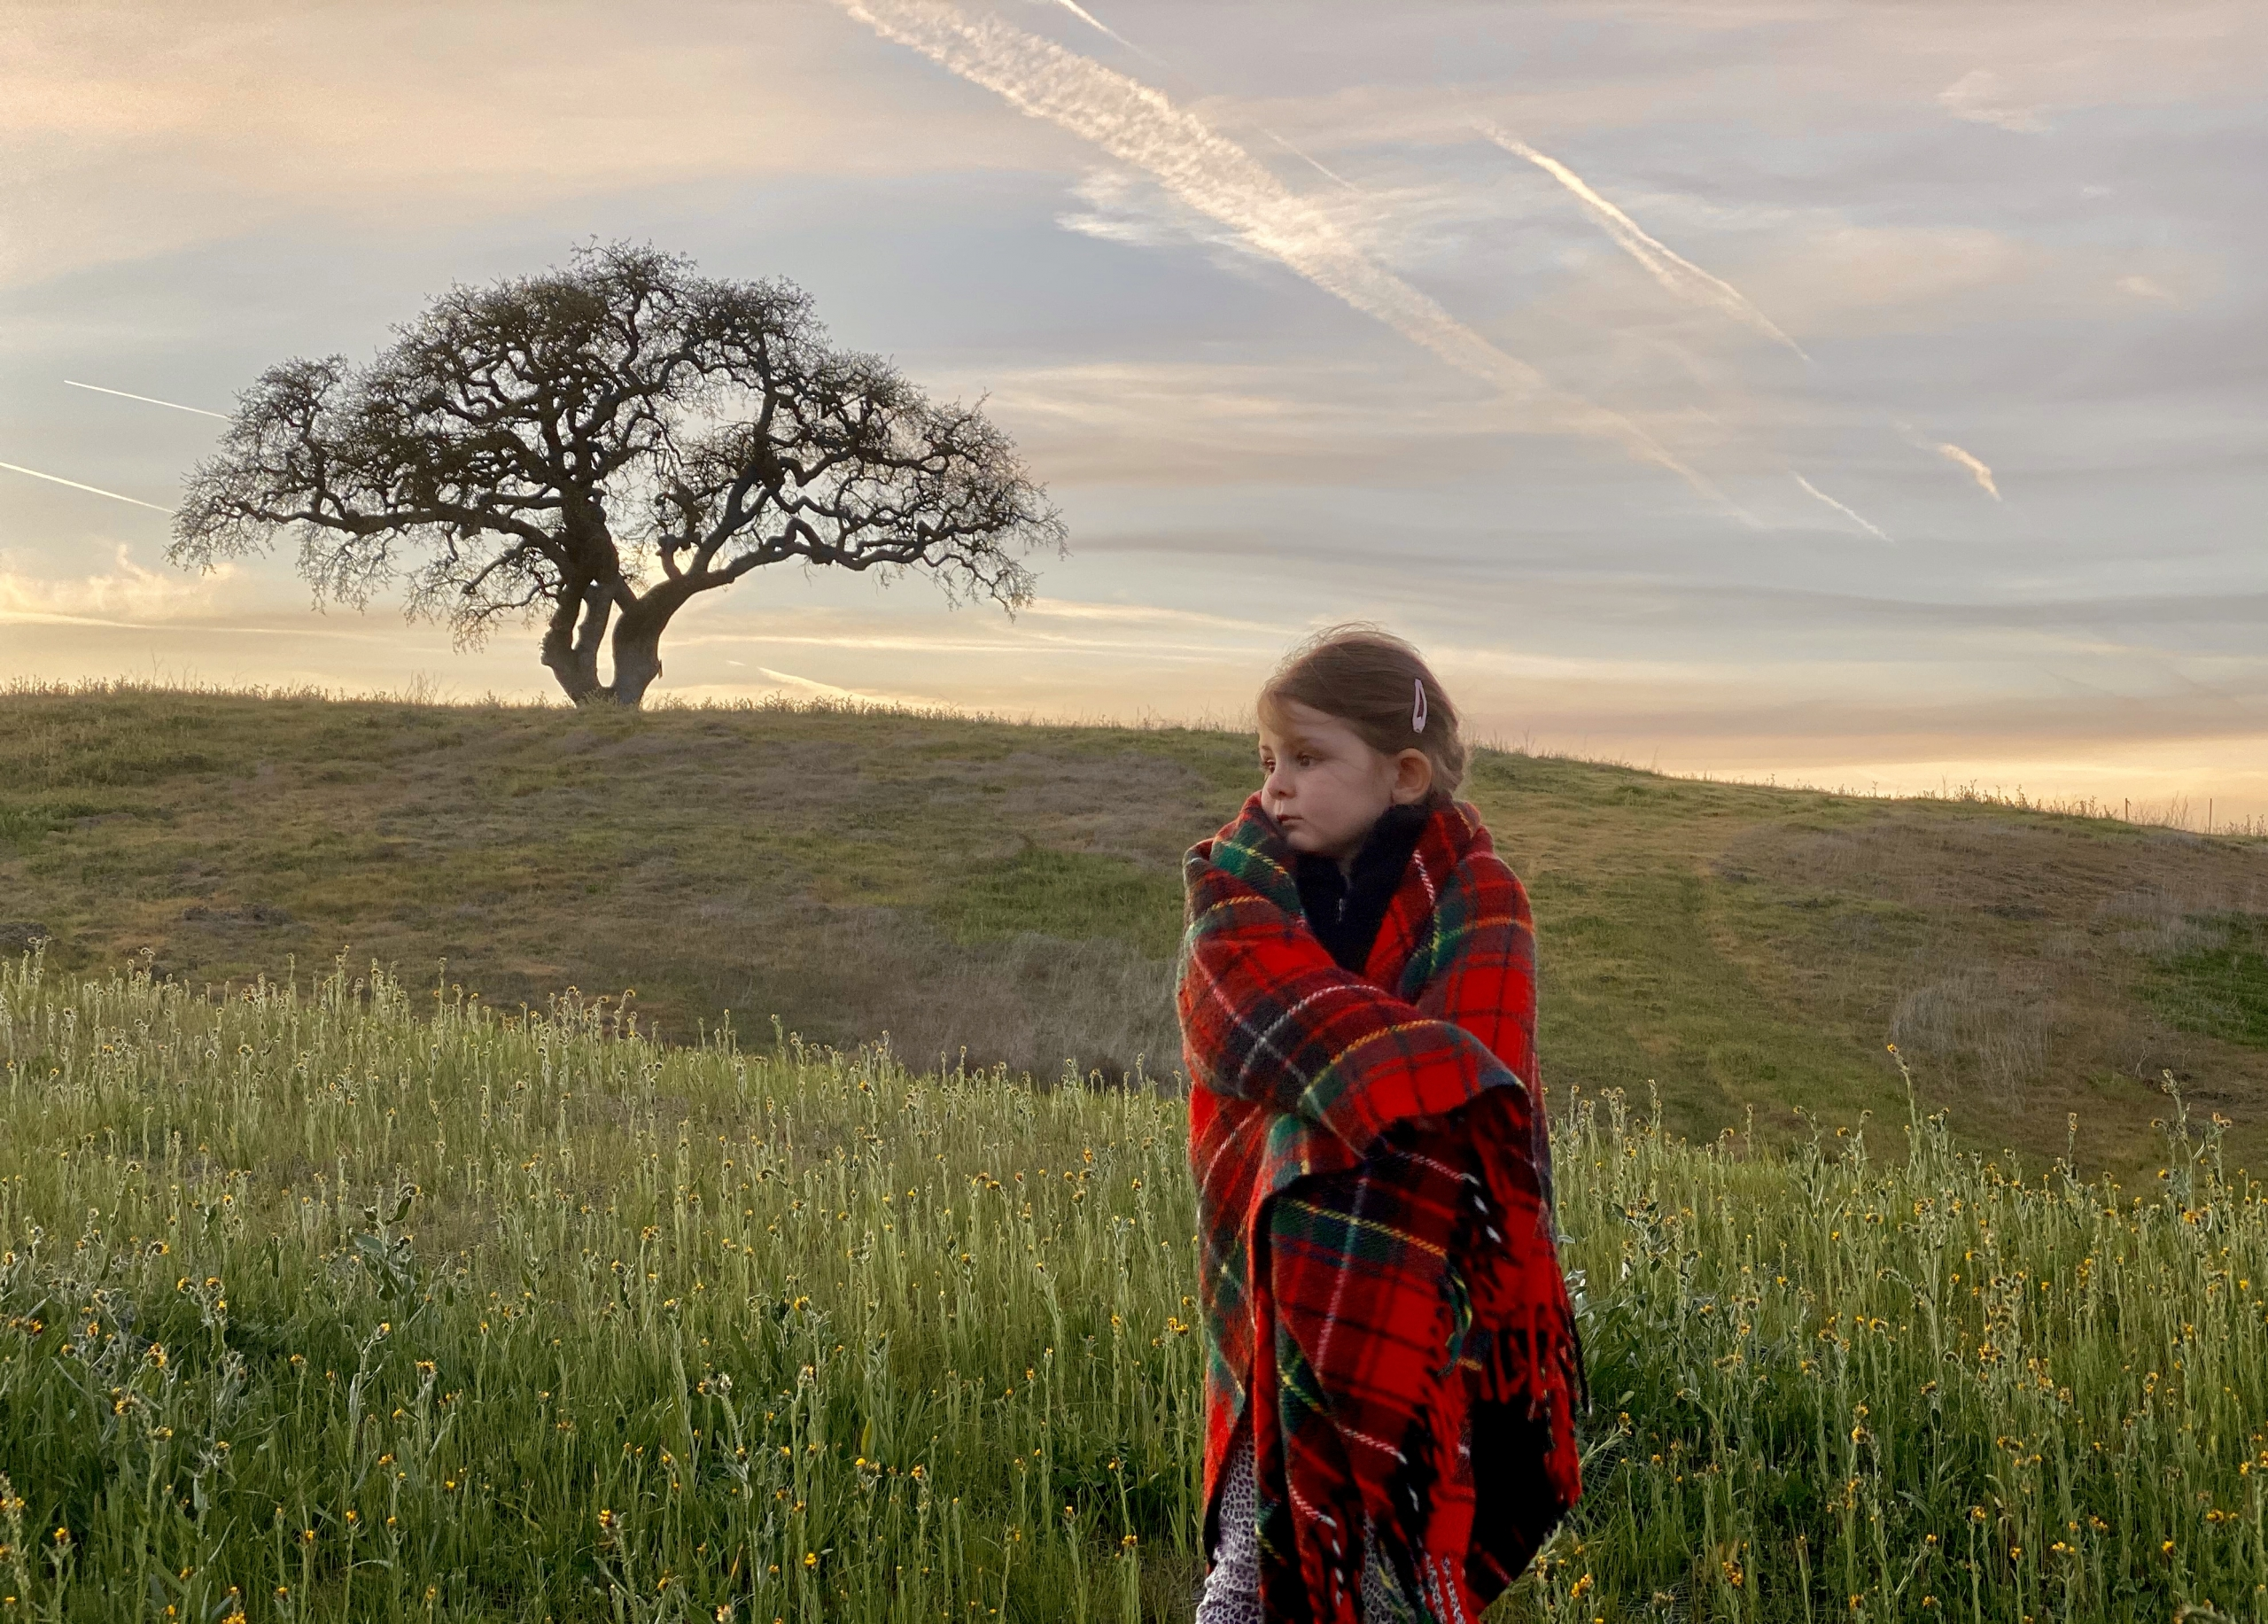 christinas goddaughter and a tree on a hill